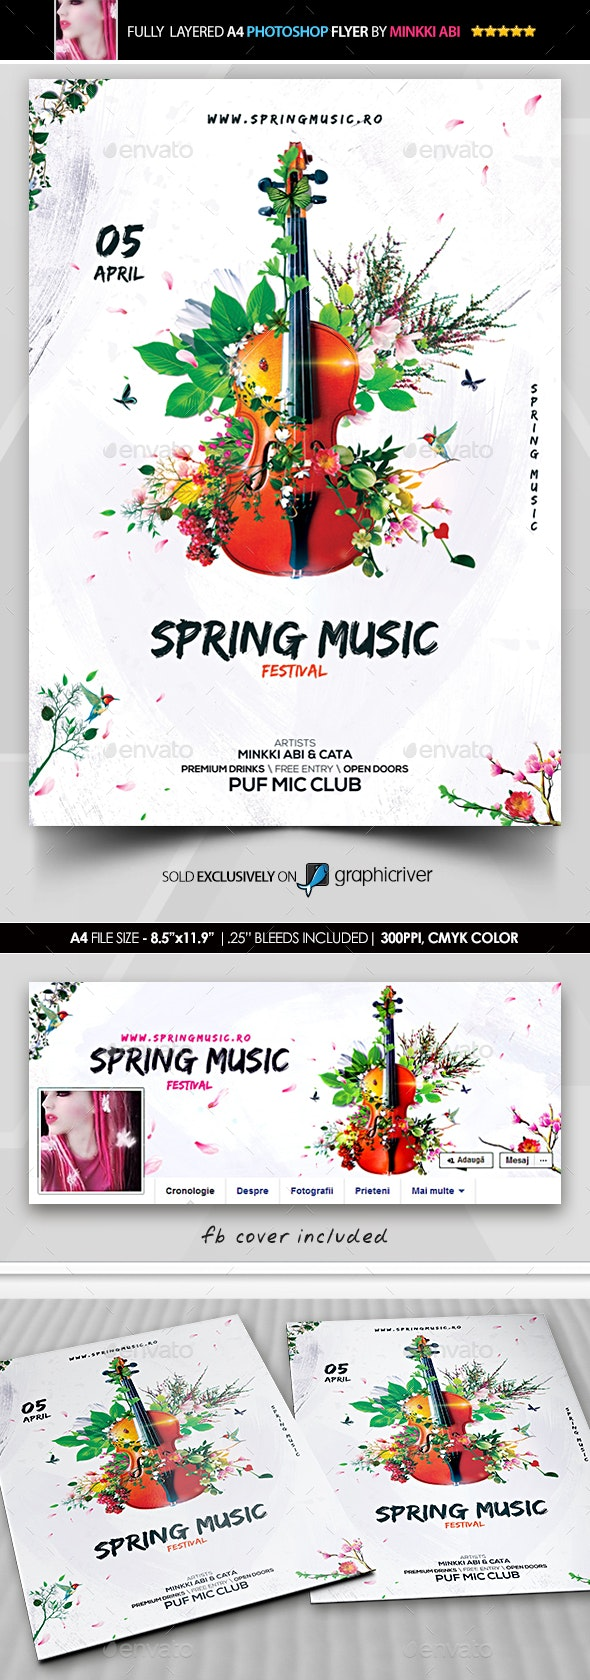 Spring Music Festival Flyer - Flyers Print Templates